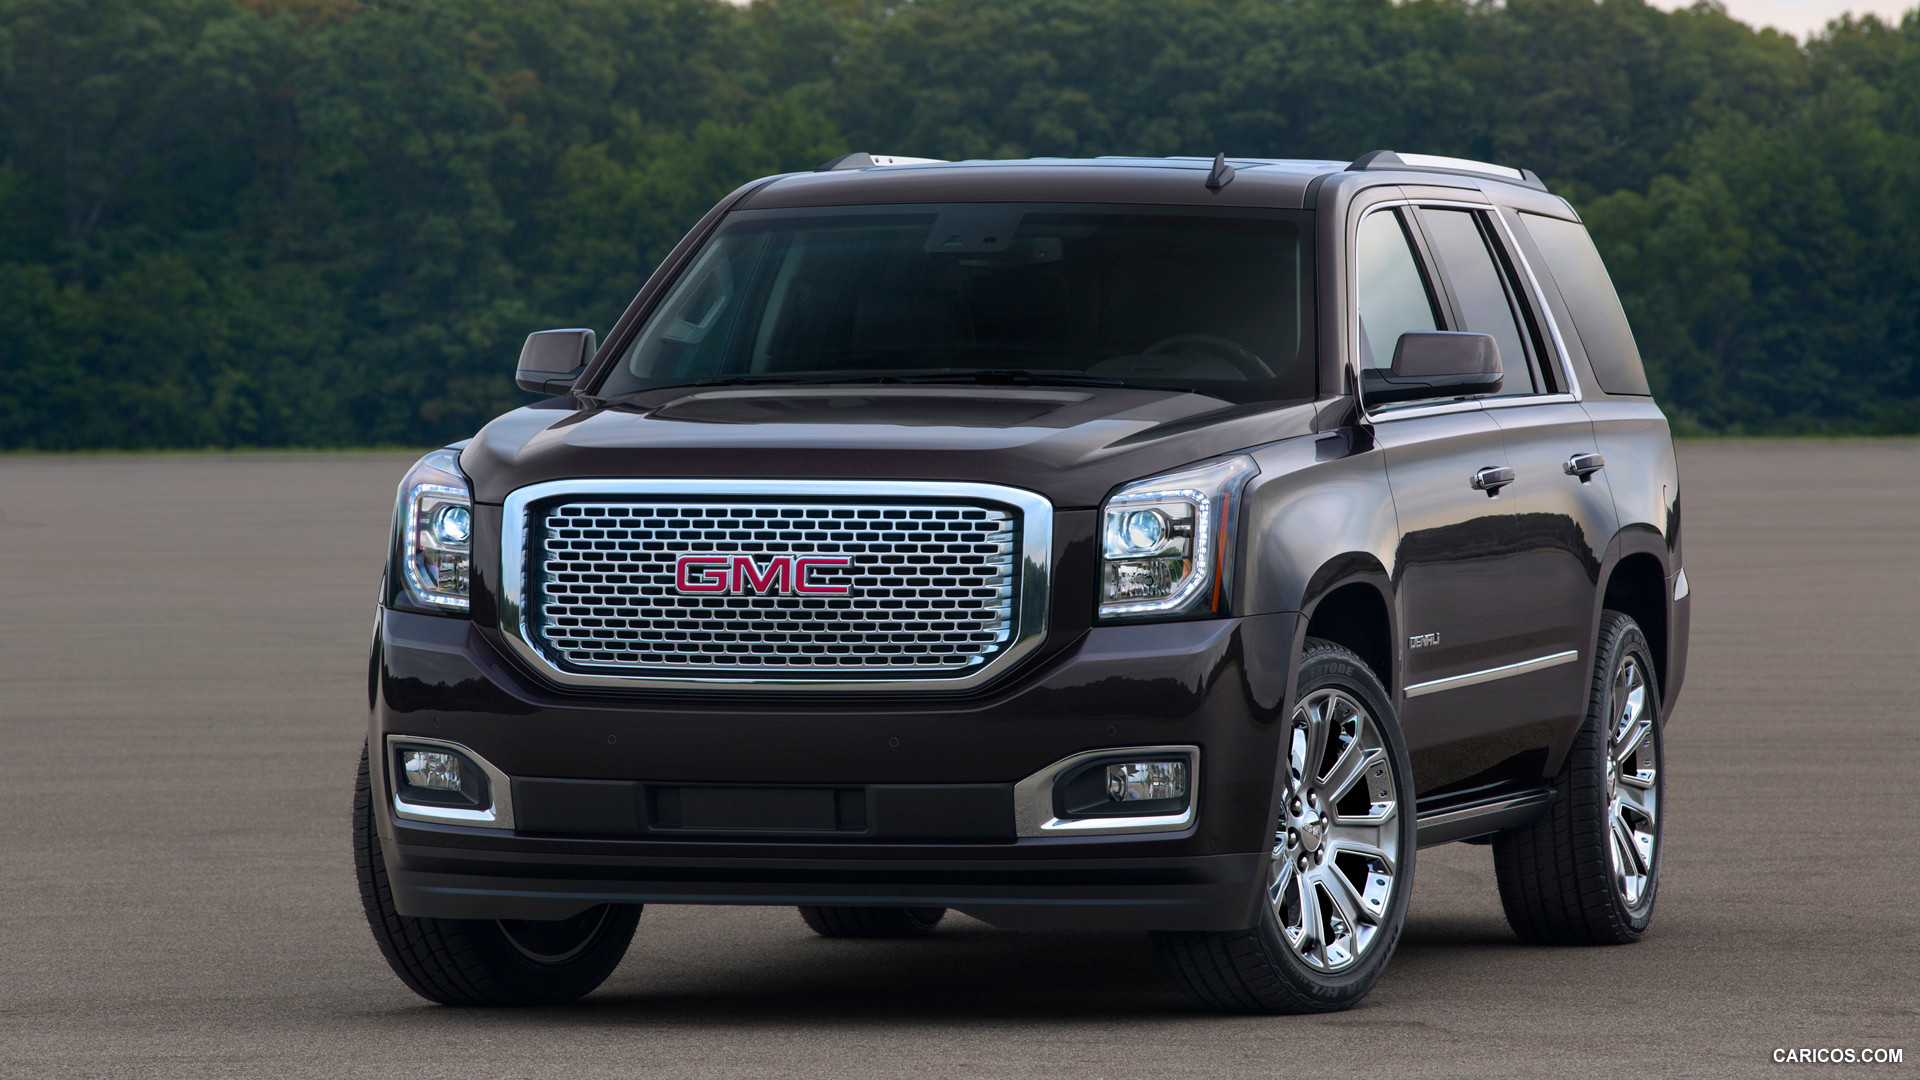 GMC Yukon Denali photo 126019